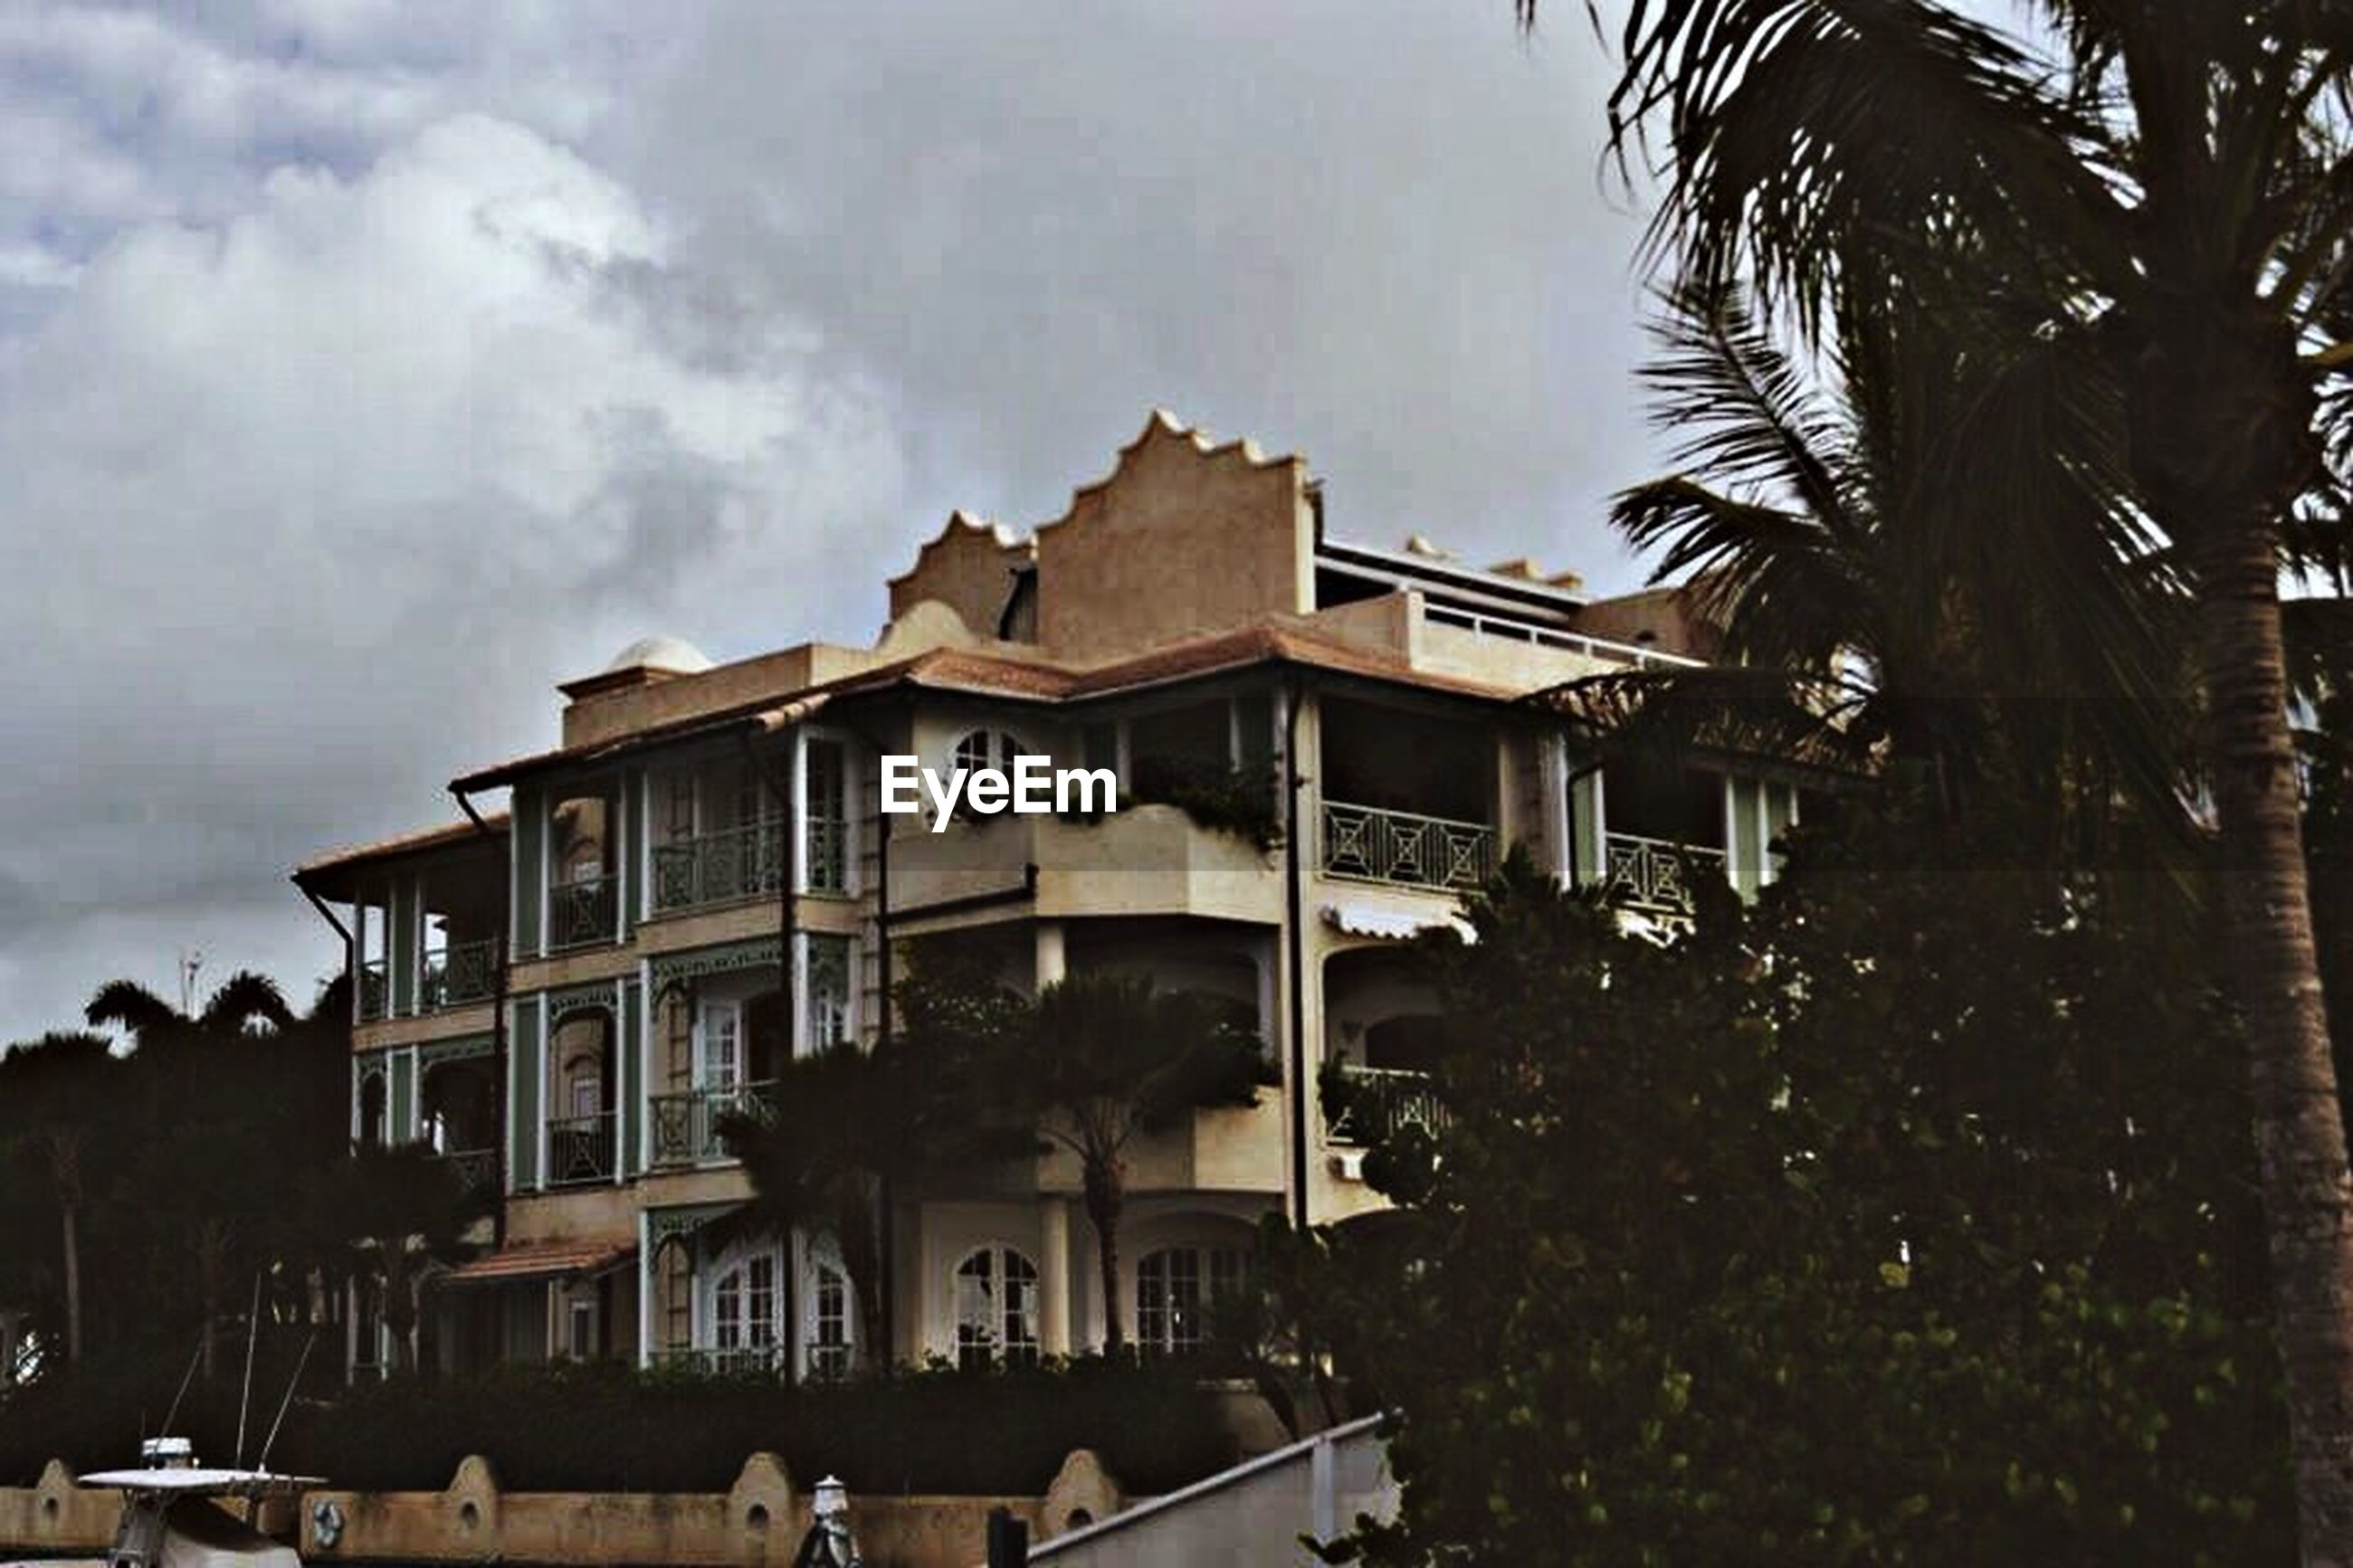 building exterior, architecture, built structure, sky, residential building, residential structure, house, window, tree, cloud - sky, city, residential district, roof, building, balcony, outdoors, day, cloud, palm tree, cloudy